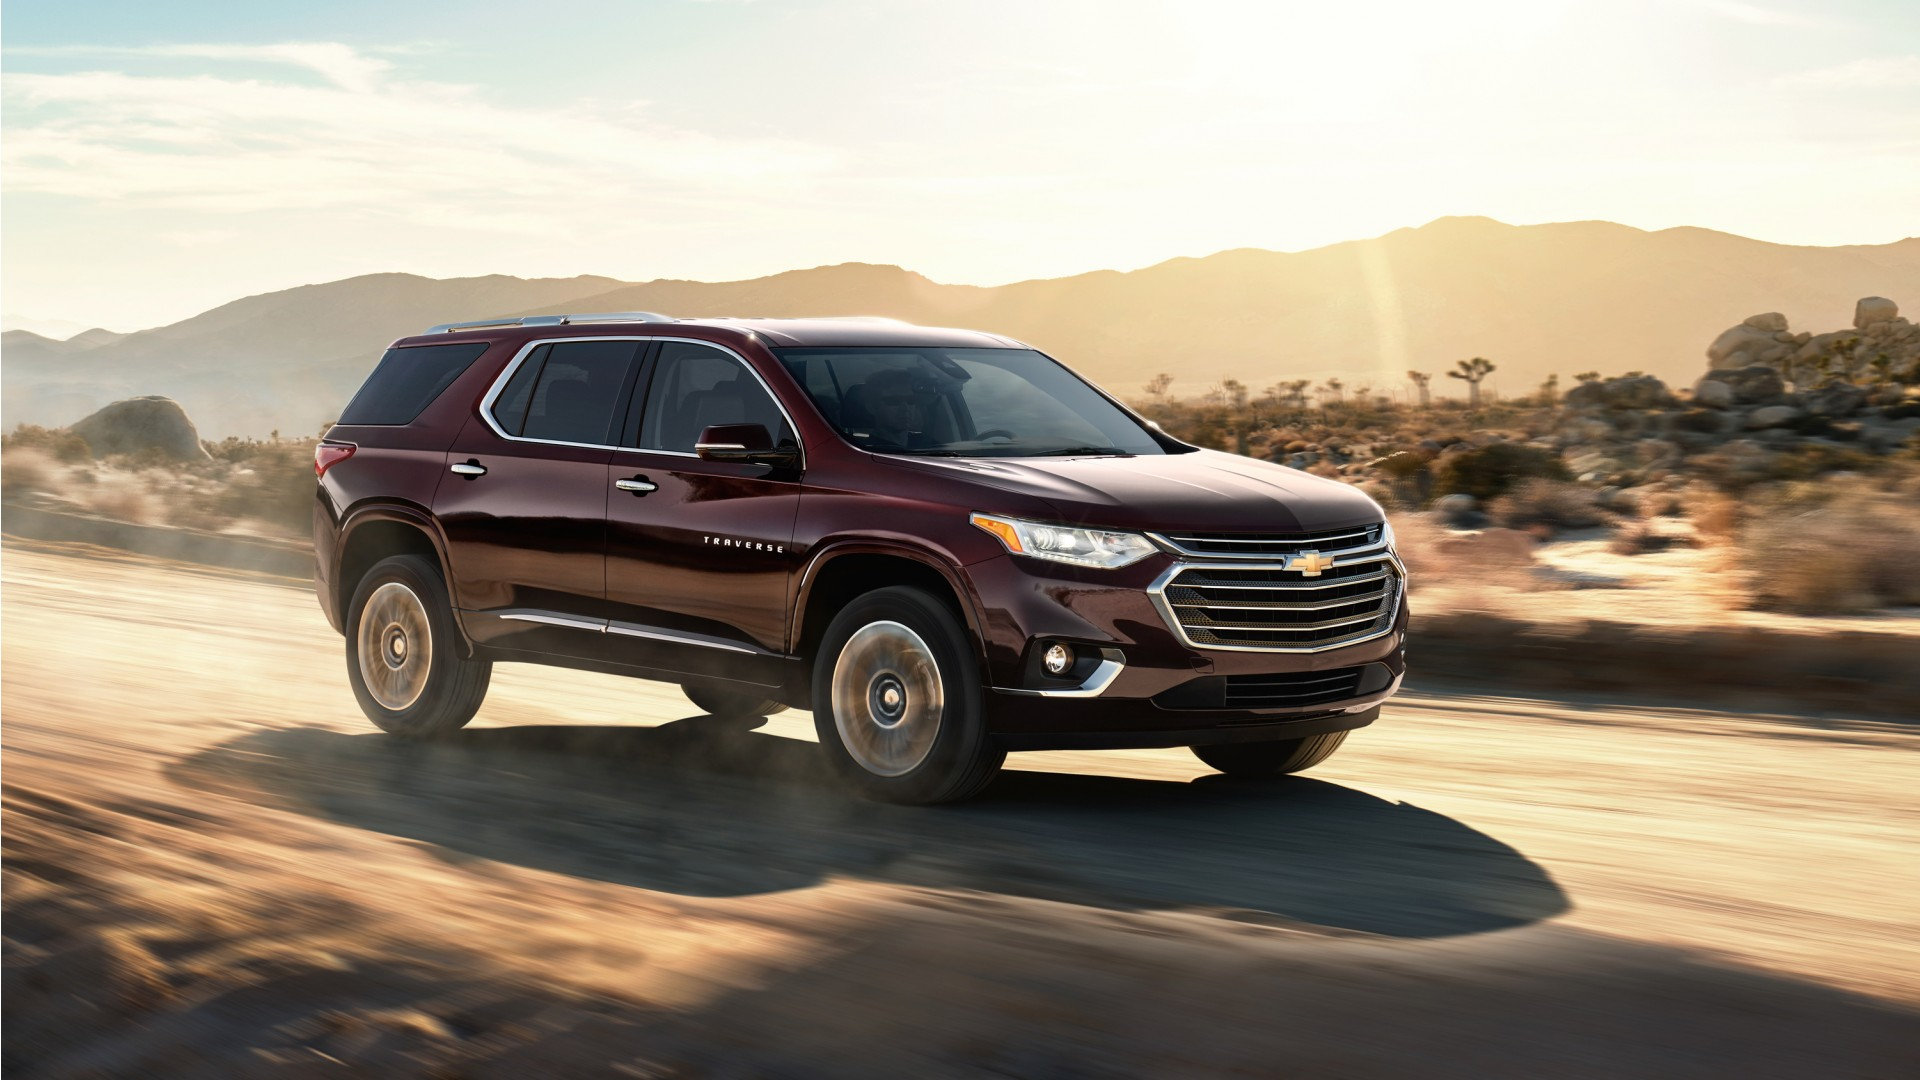 2018 Chevrolet Traverse Wallpaper HD Car Wallpapers ID